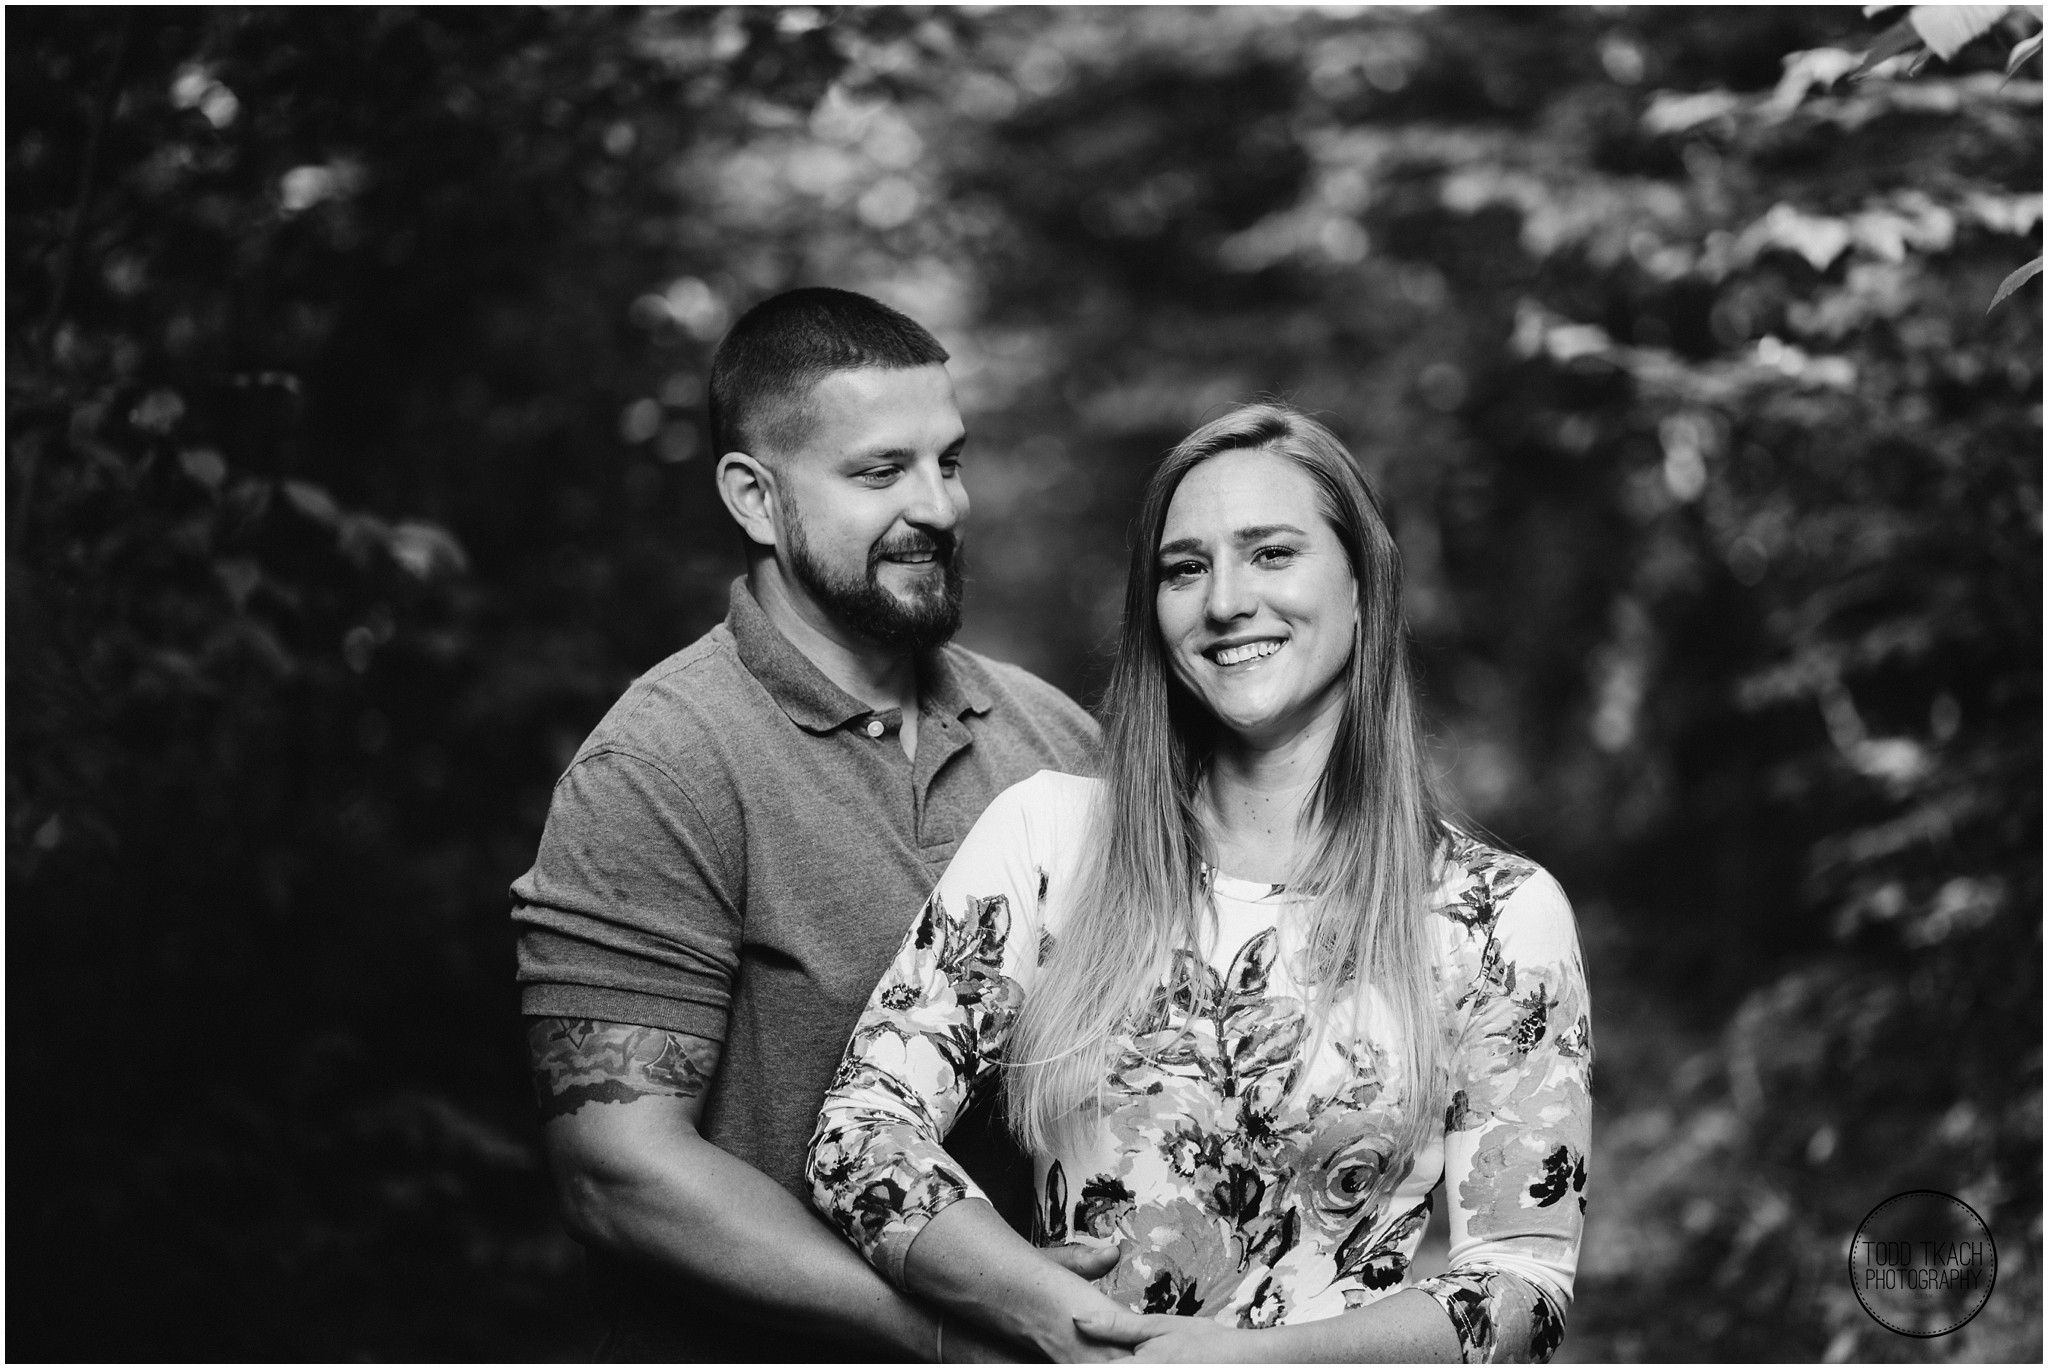 Kim & Brandon Engagement - Black and White Forest Canopy Portrait